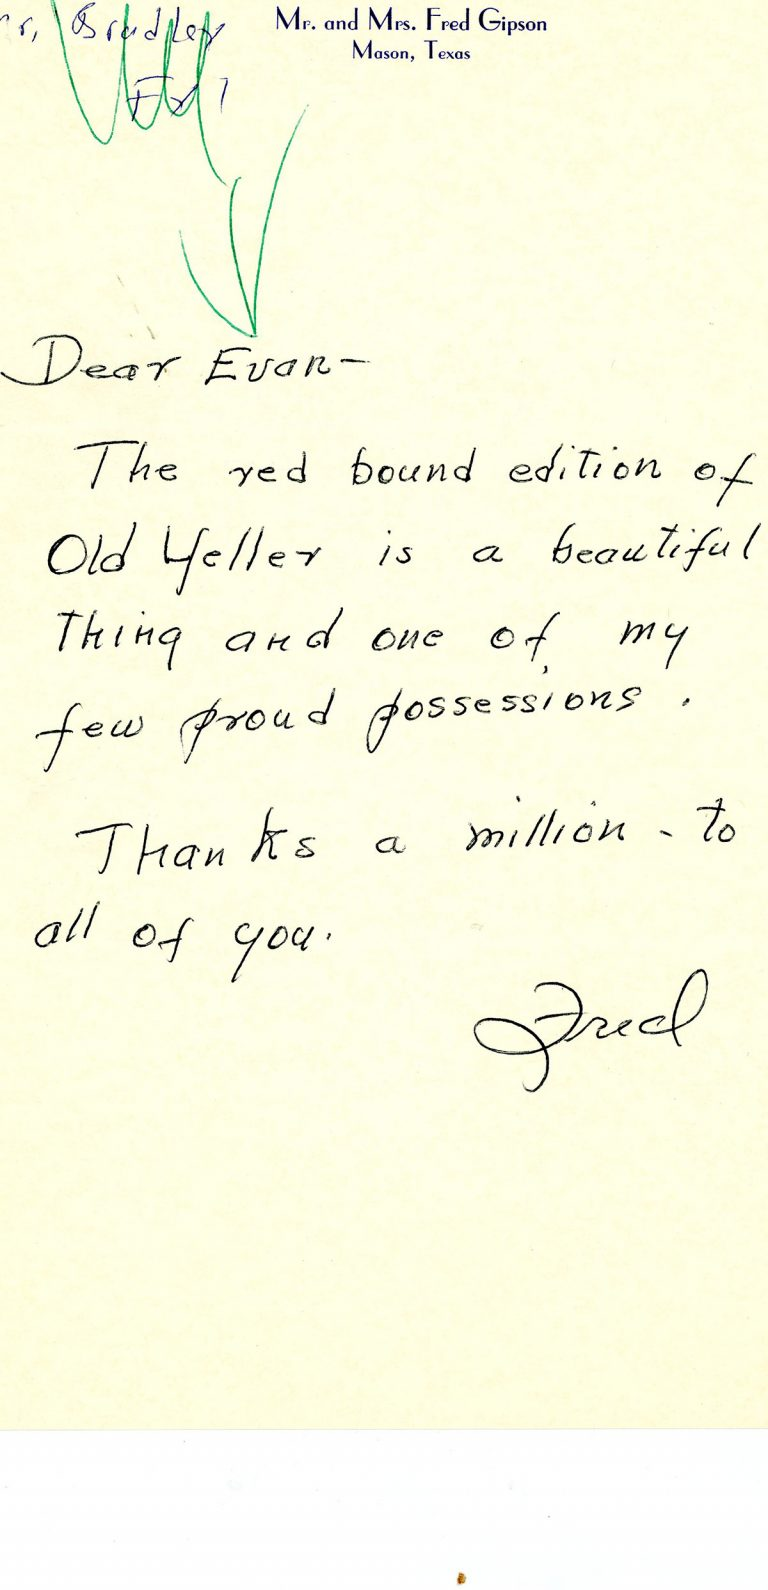 Letter from Fred Gipson regarding Old Yeller